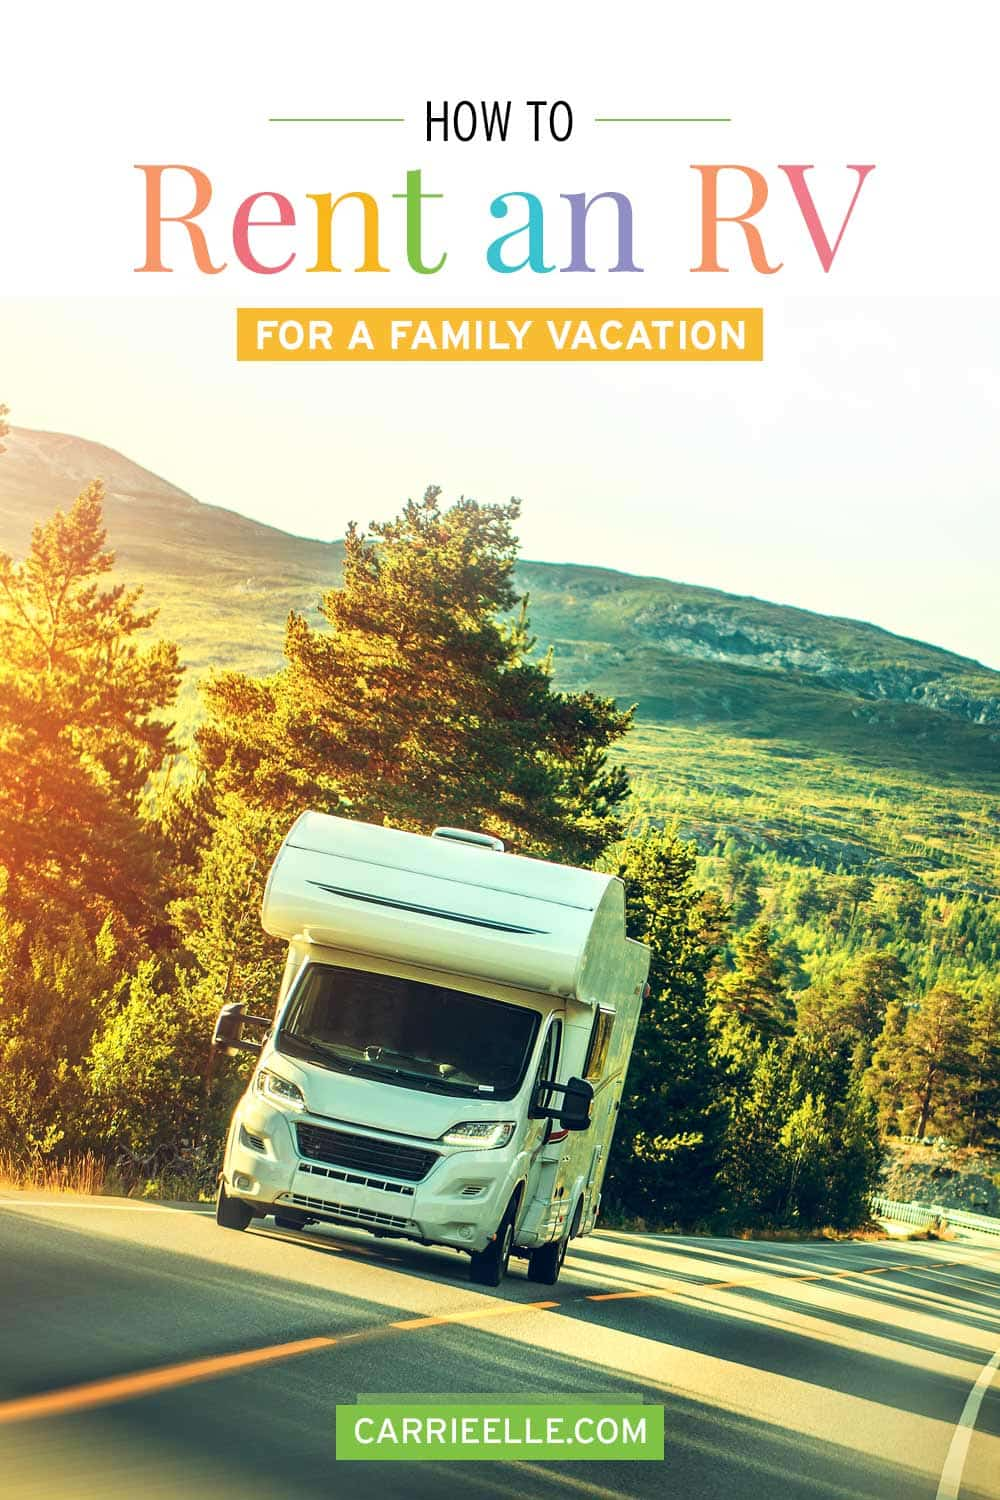 How to Rent an RV CarrieElle.com